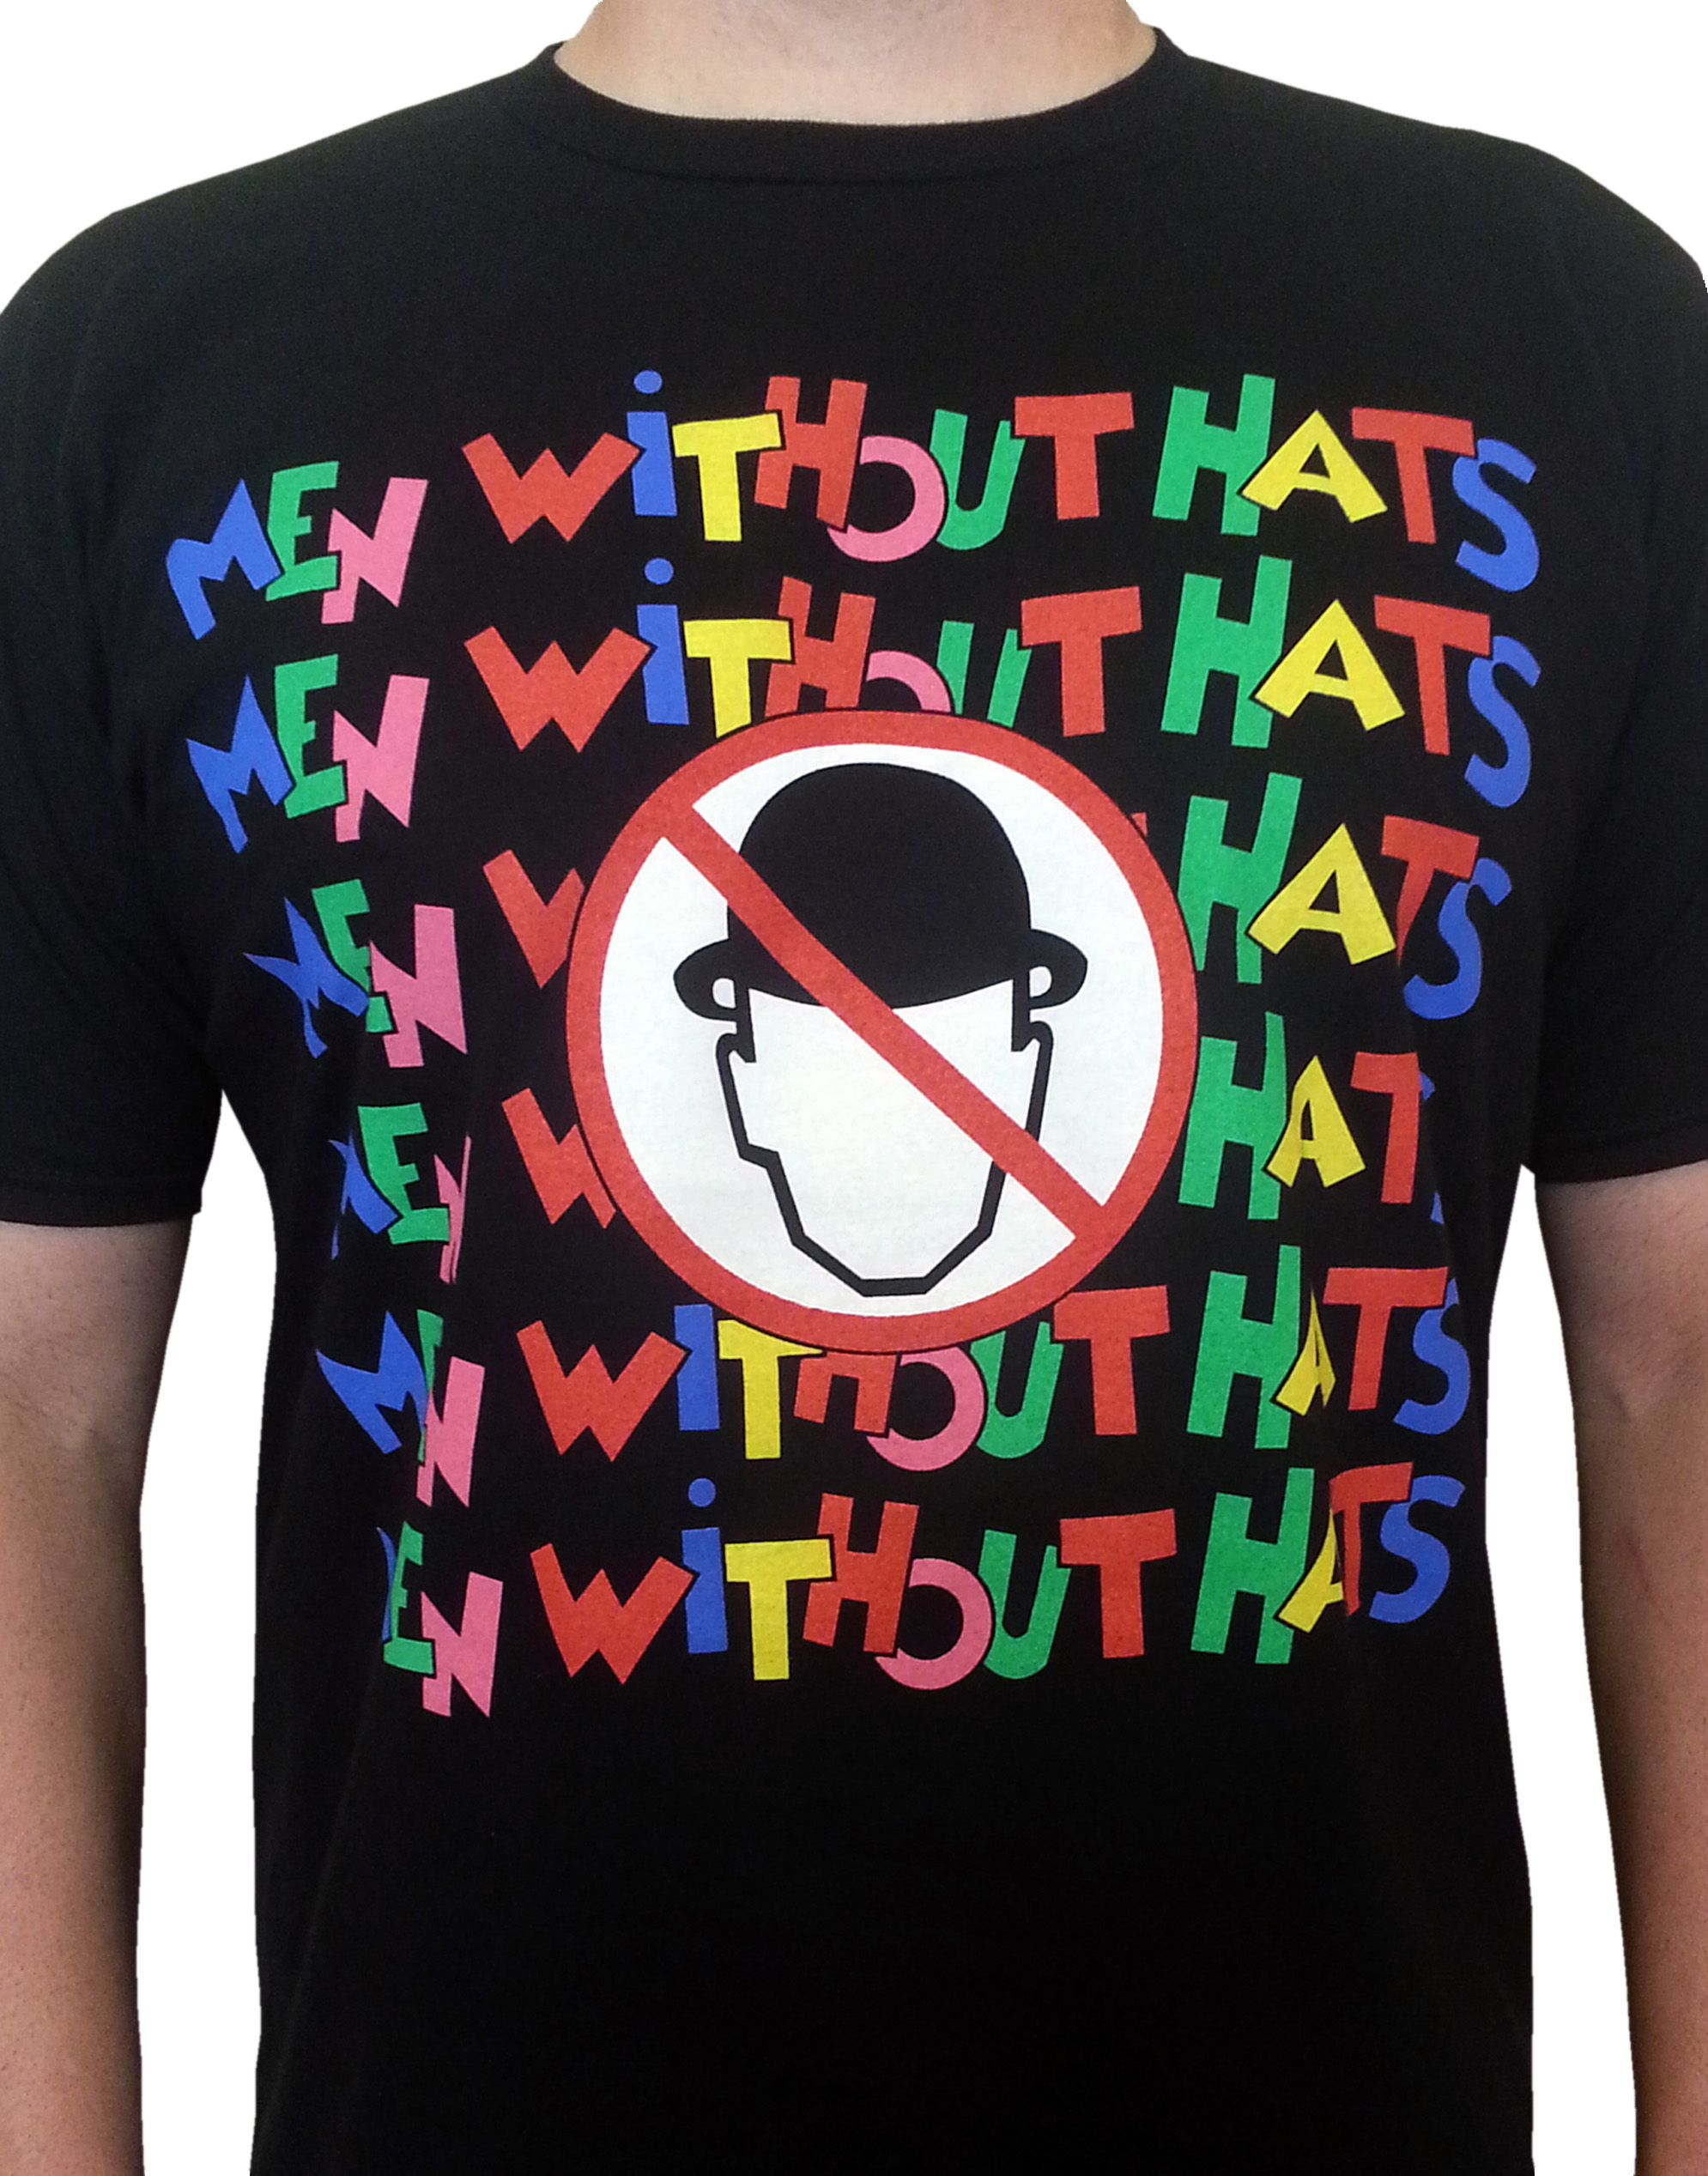 Black t shirt goes with - Men Without Hats Pop Goes The World Mens Black T Shirt